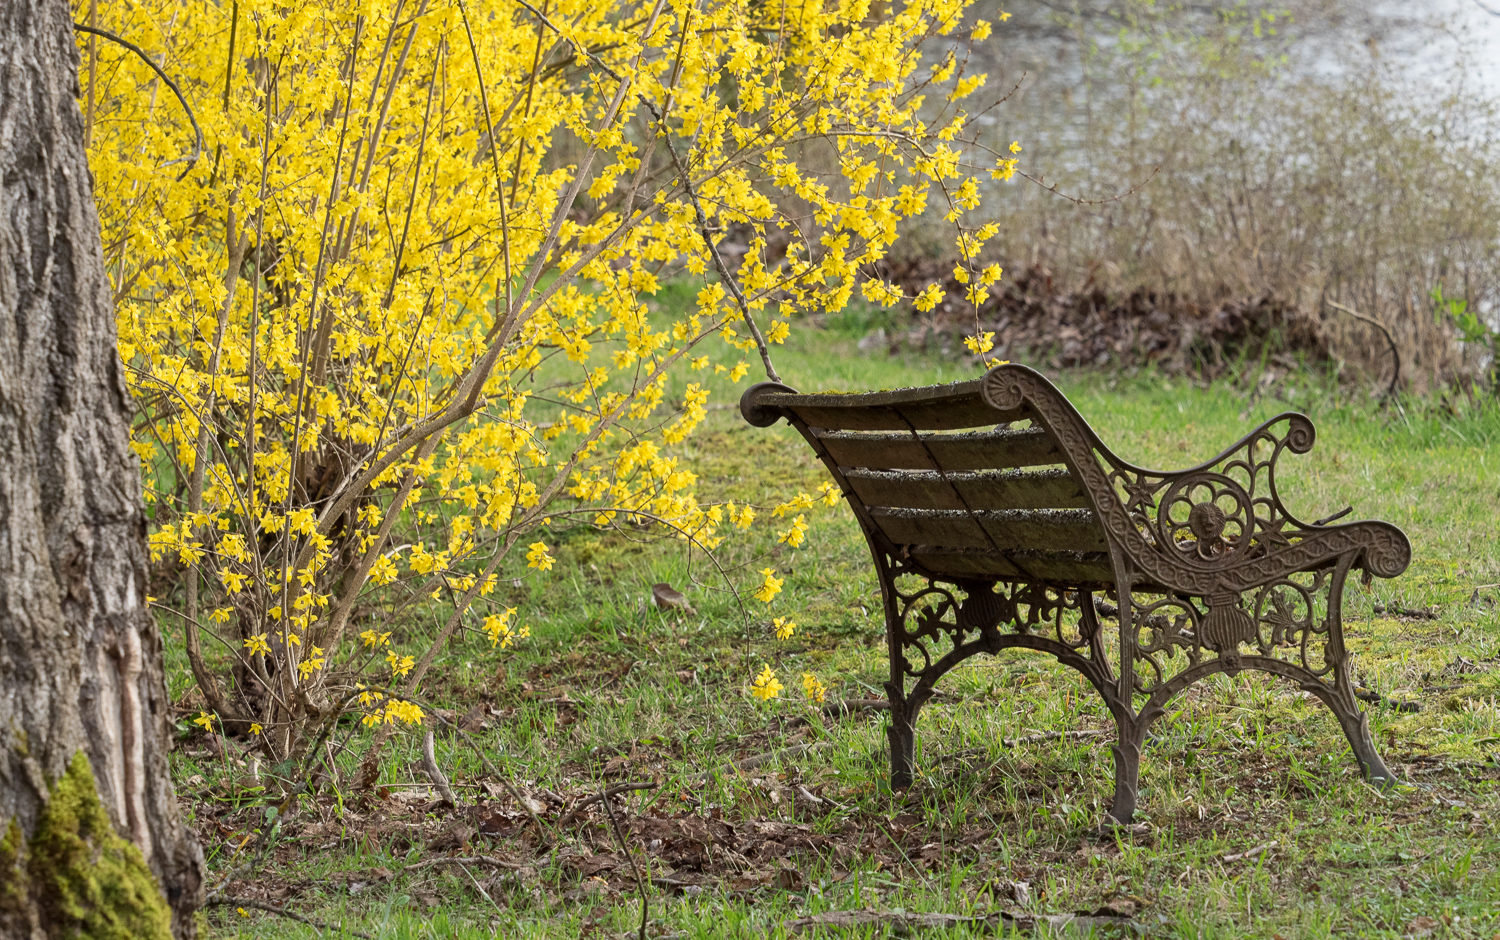 Bench & Yellow Blossoms